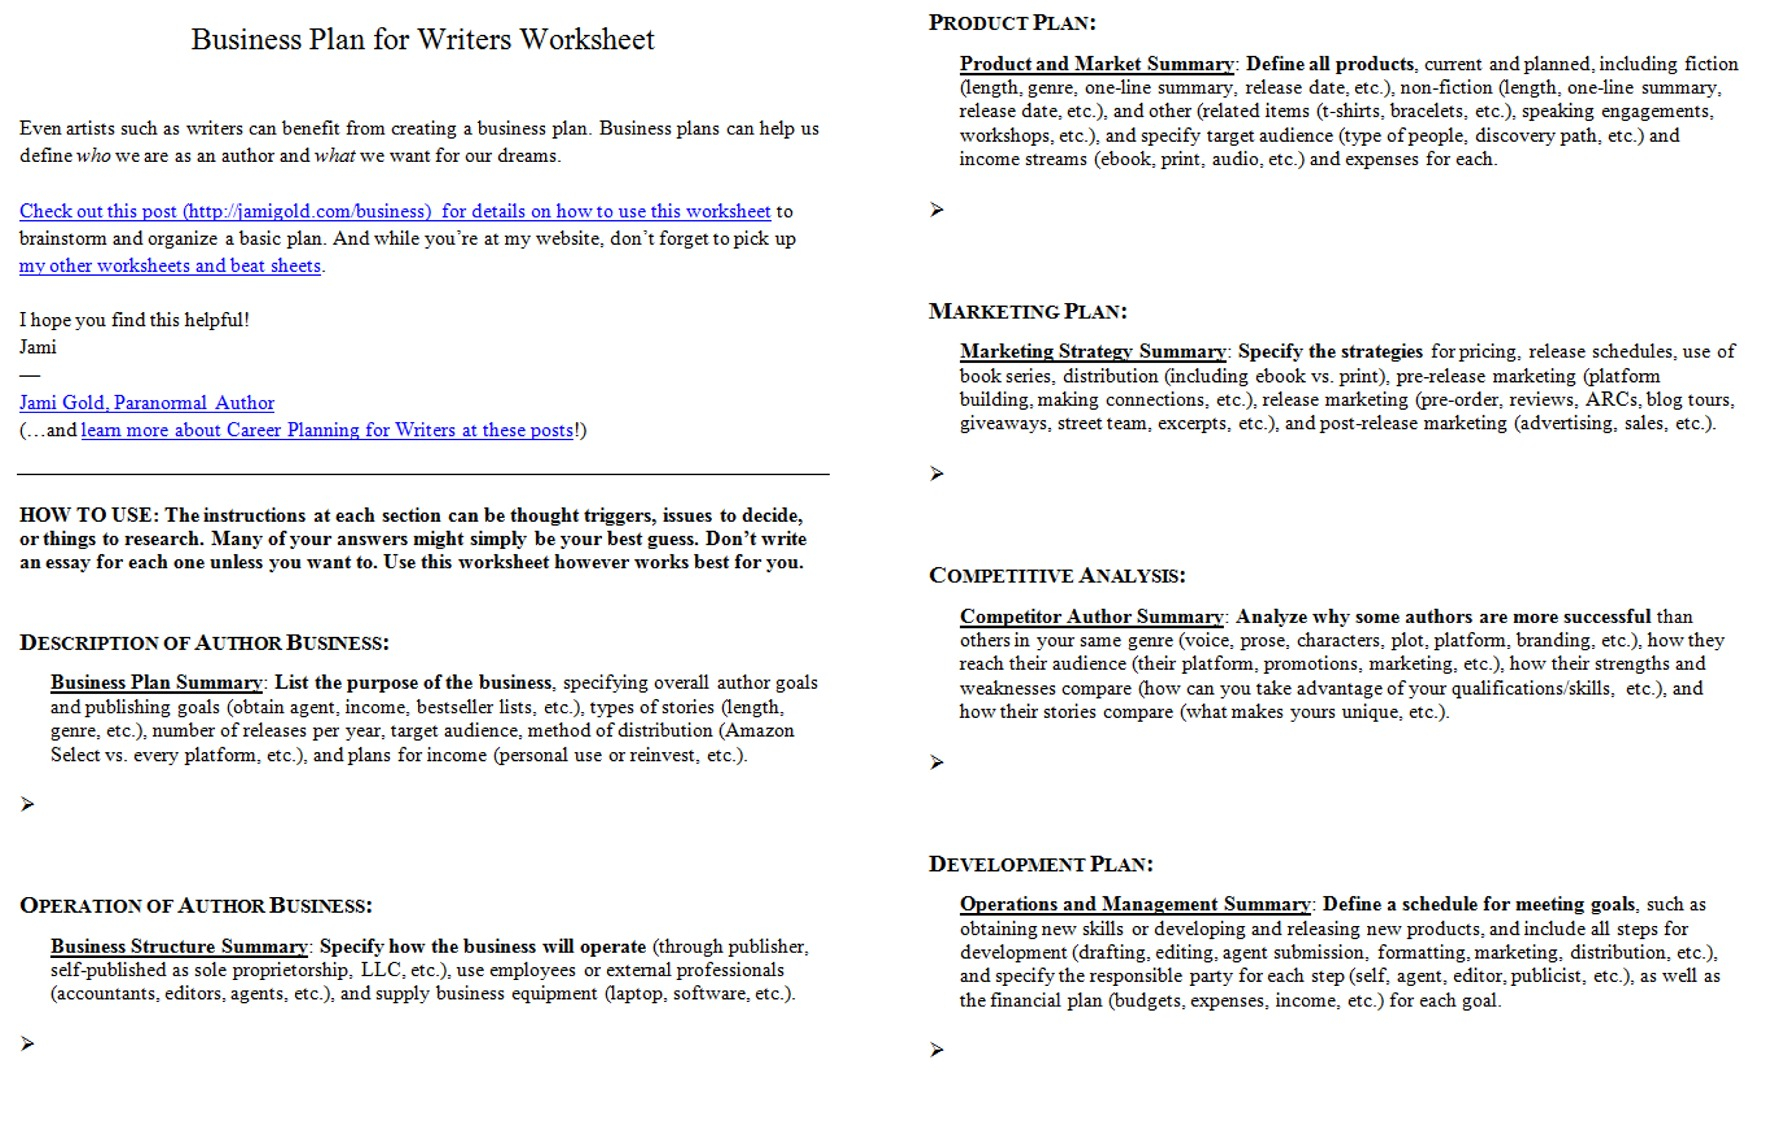 Aldiablosus  Winning Worksheets For Writers  Jami Gold Paranormal Author With Hot Screen Shot Of Both Pages Of The Business Plan For Writers Worksheet With Archaic Worksheets On Surface Area And Volume Also Picture Story Sequencing Worksheets In Addition Ratio Worksheet Grade  And Weathering And Erosion Worksheets For Kids As Well As Orchestra Worksheet Additionally Worksheet In Math From Jamigoldcom With Aldiablosus  Hot Worksheets For Writers  Jami Gold Paranormal Author With Archaic Screen Shot Of Both Pages Of The Business Plan For Writers Worksheet And Winning Worksheets On Surface Area And Volume Also Picture Story Sequencing Worksheets In Addition Ratio Worksheet Grade  From Jamigoldcom